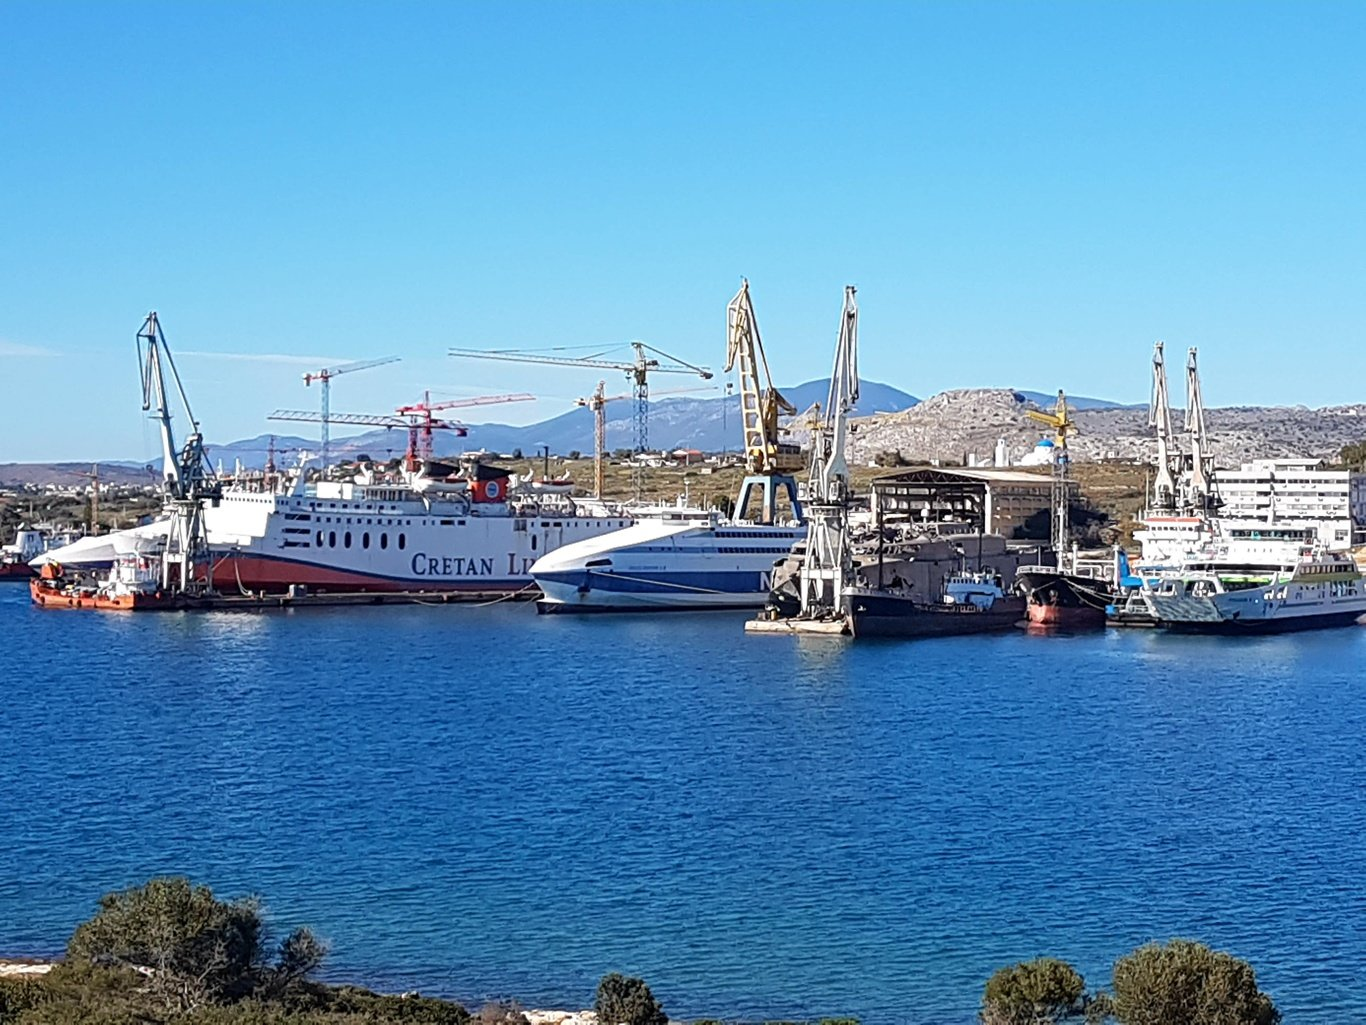 Spanopoulos shipyard